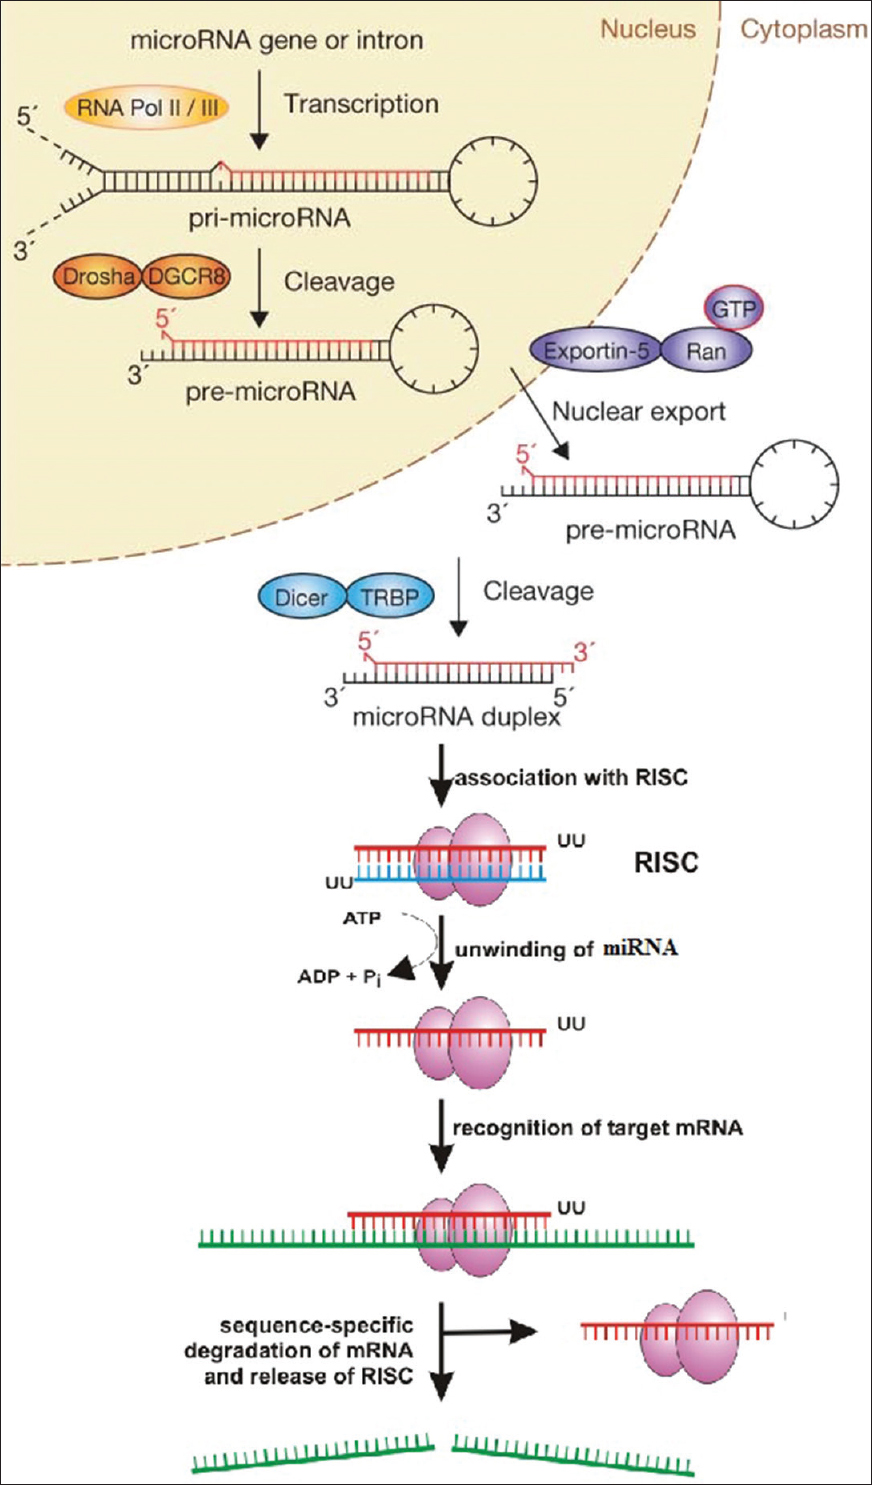 Applicability of RNA interference in cancer therapy: Current